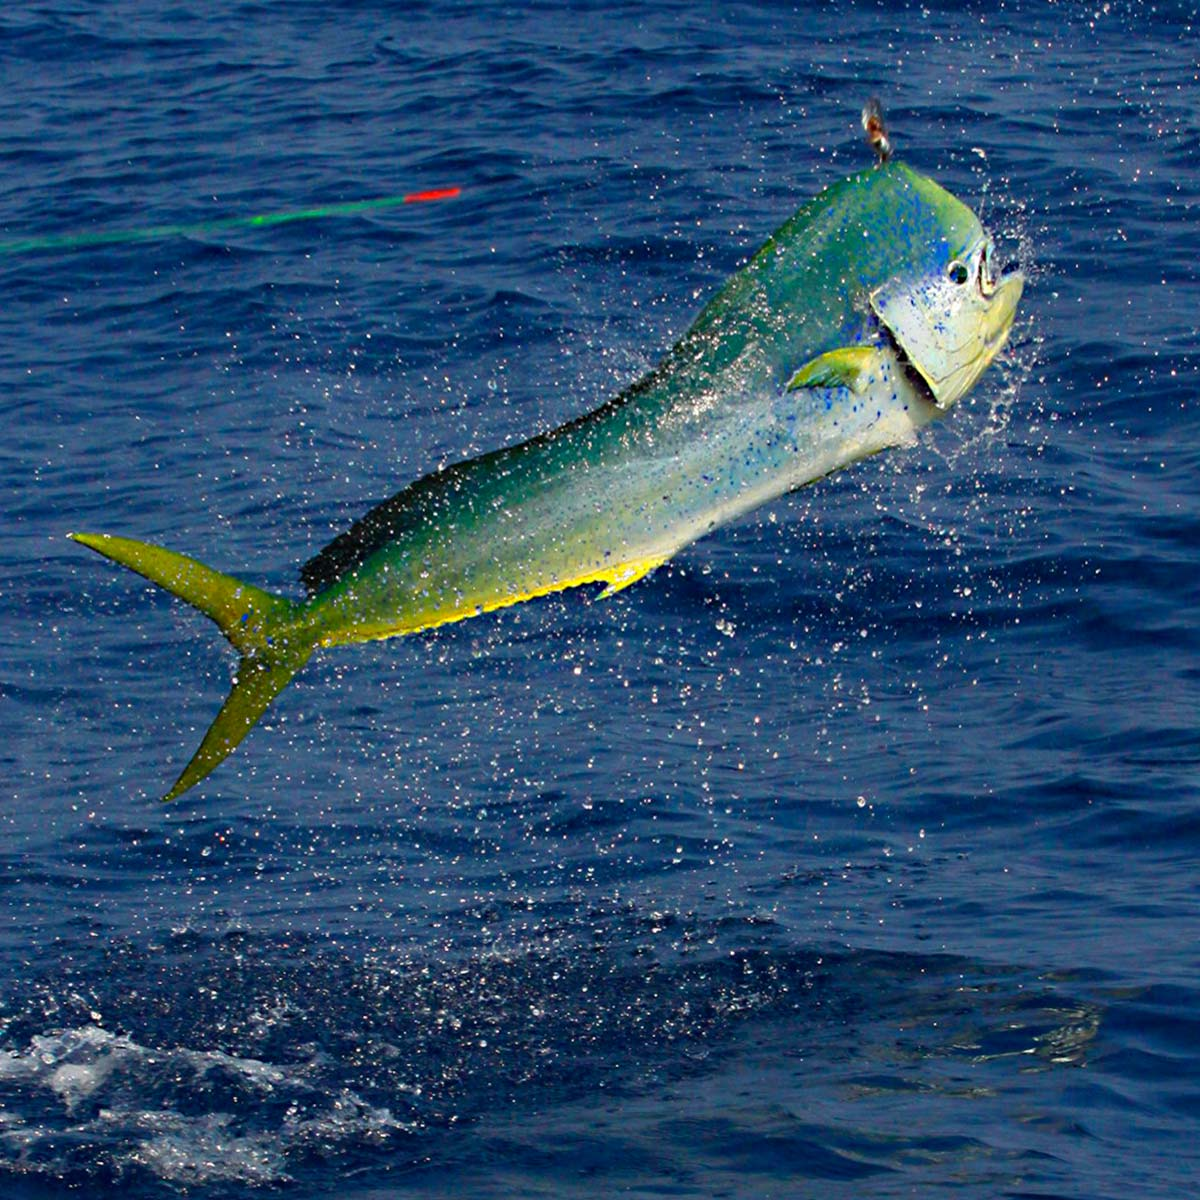 Affordable fishing in cabo san lucas seashine adventures for Fishing in cabo